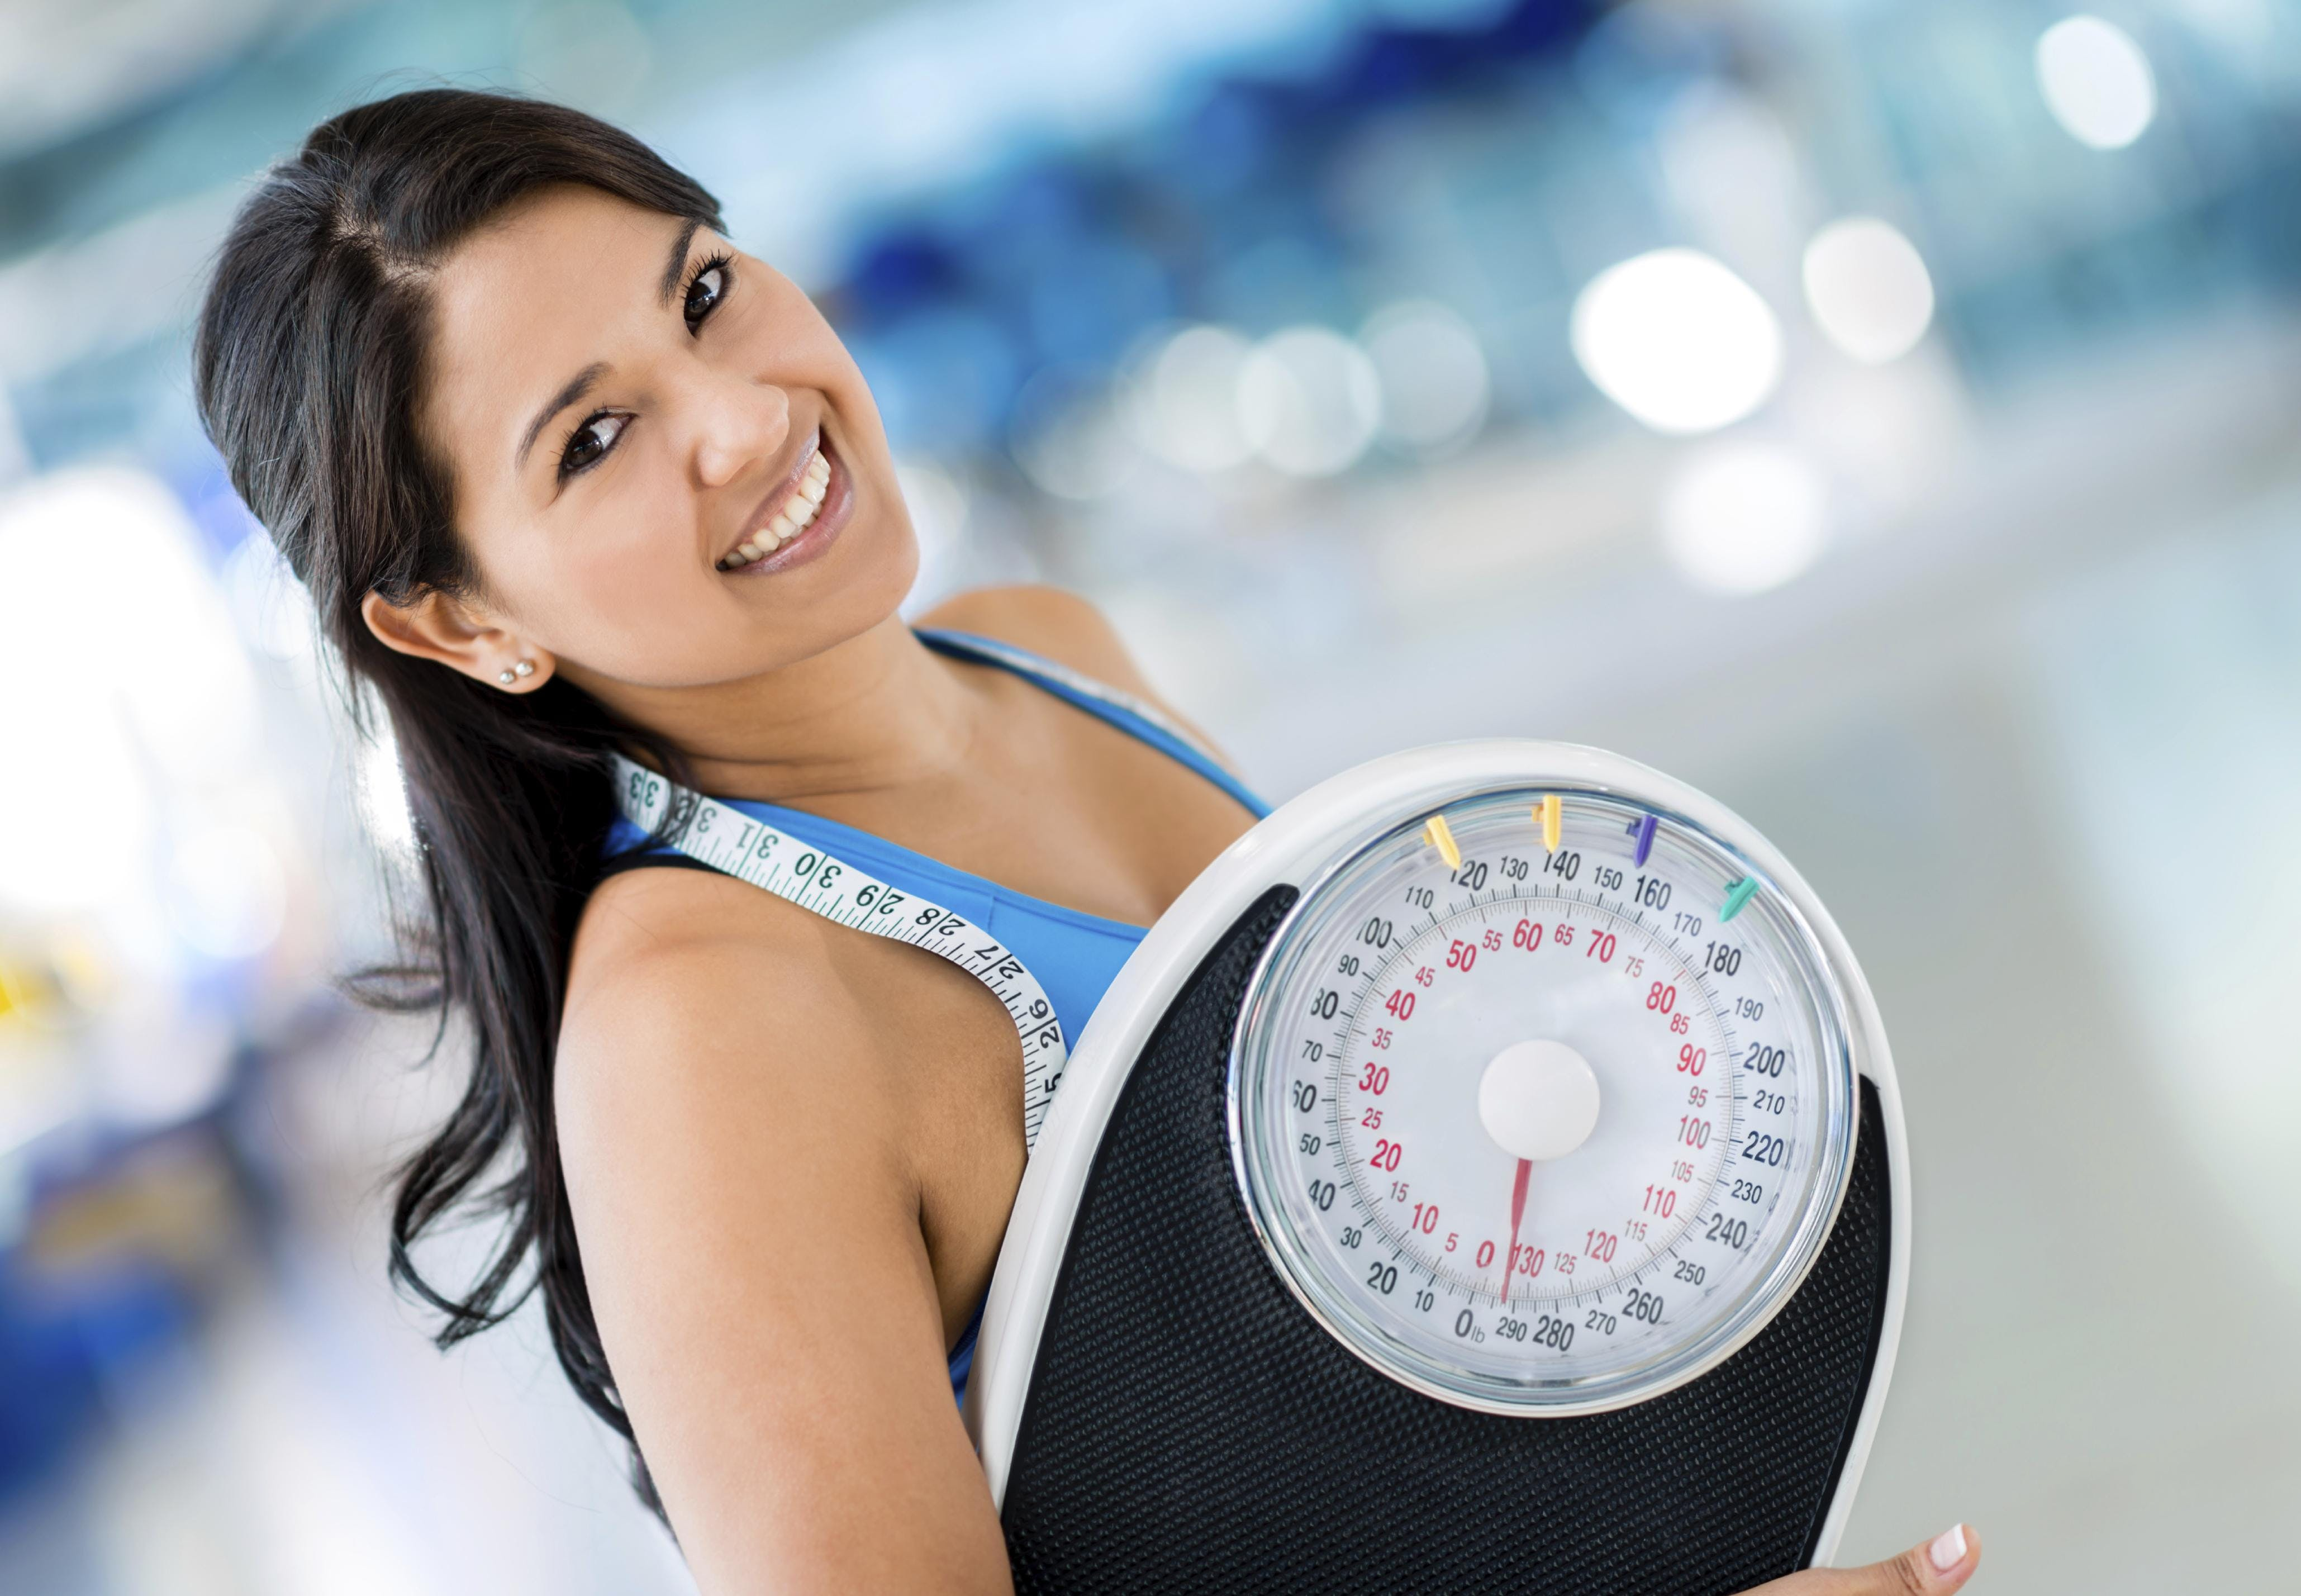 Weight Loss Surgery Seminar In Wildomar From Southwest Healthcare At